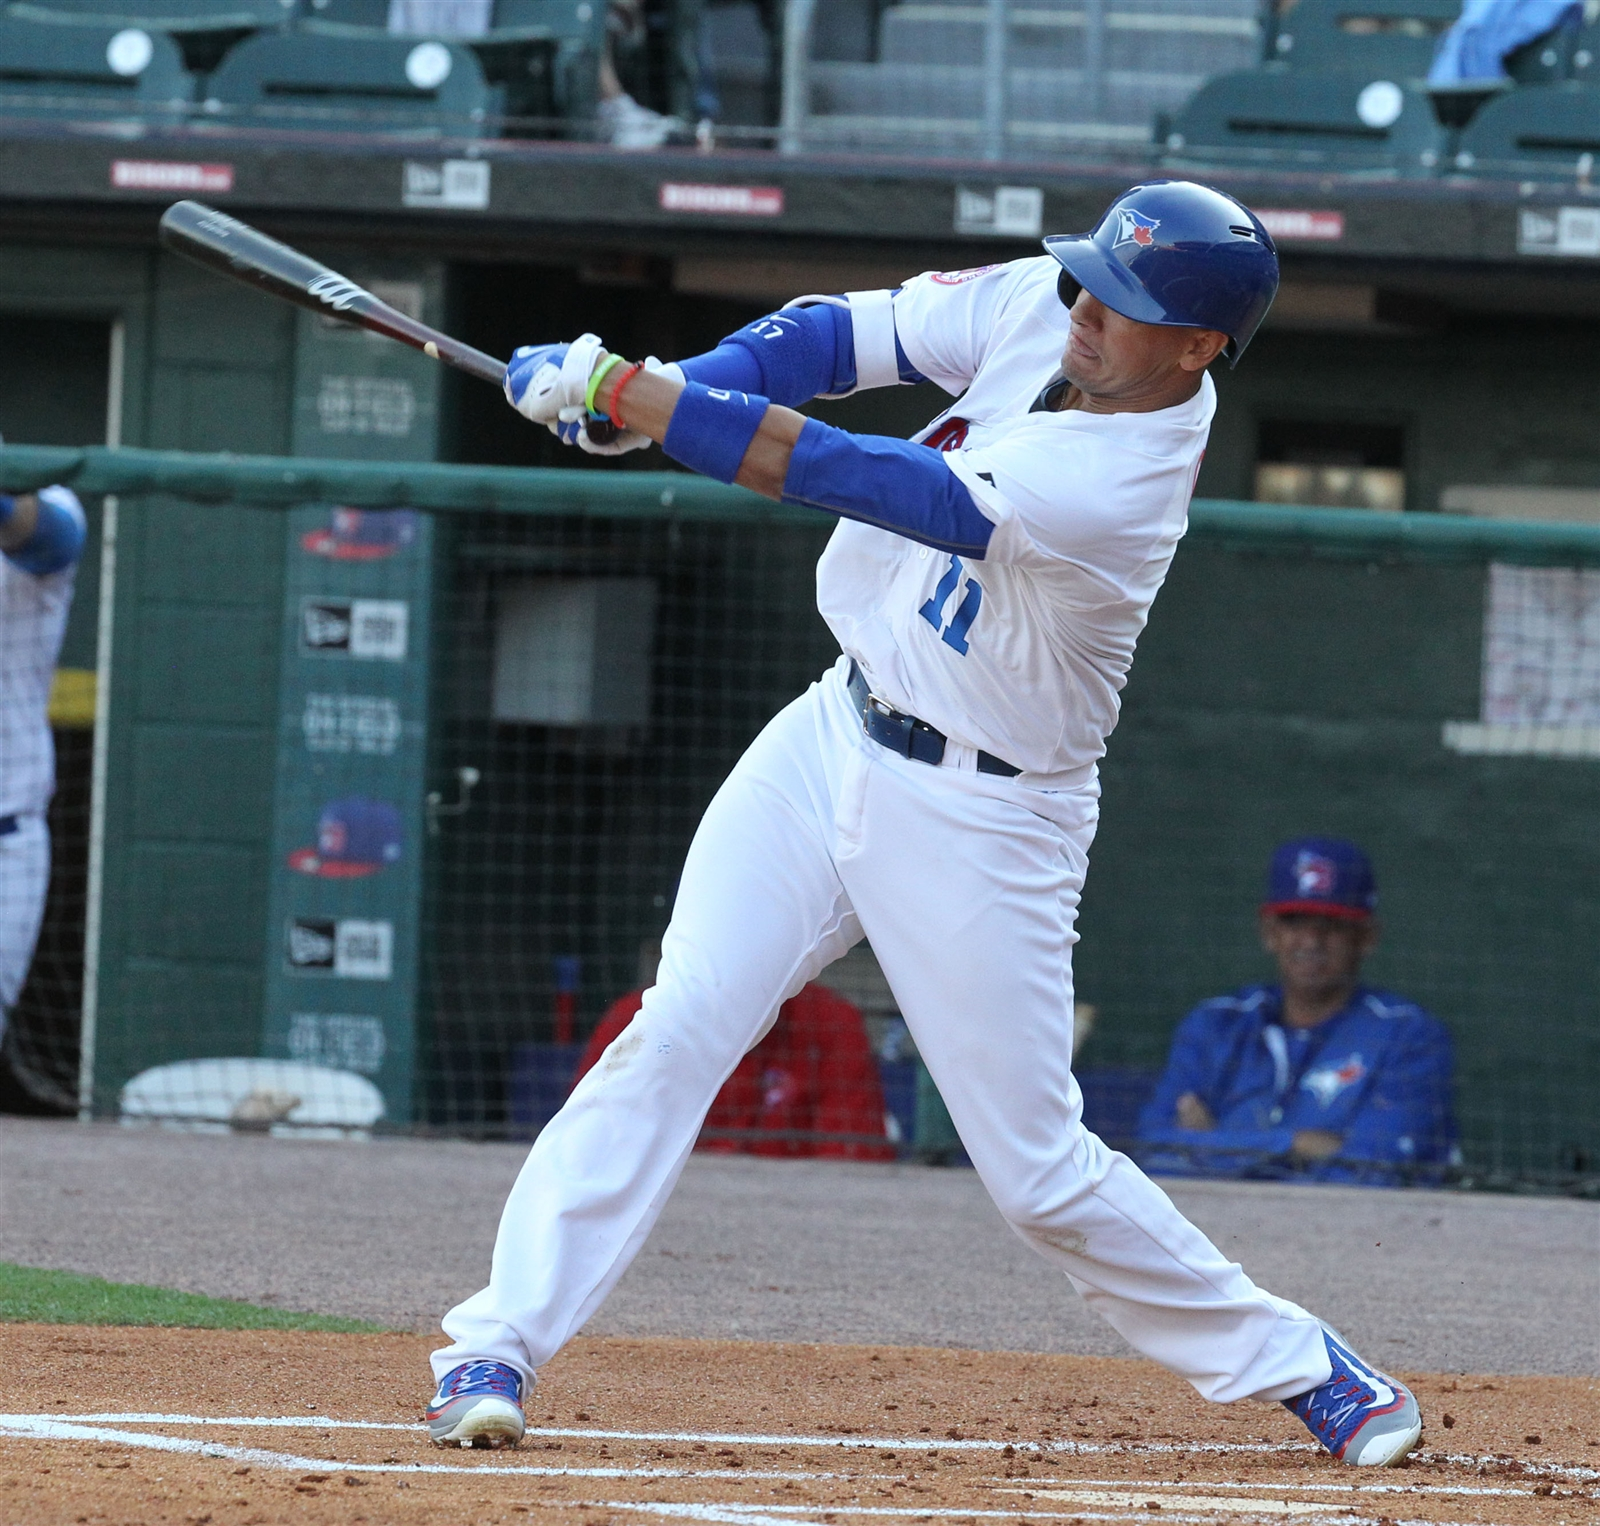 Ryan Goins will likely be one of the Blue Jays September call-ups.